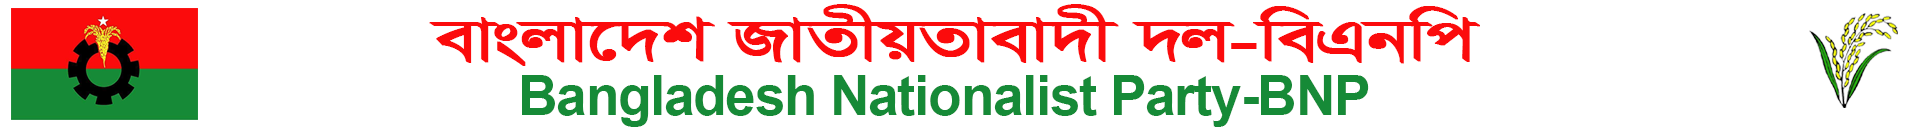 BNP Bangladesh Nationalist Party